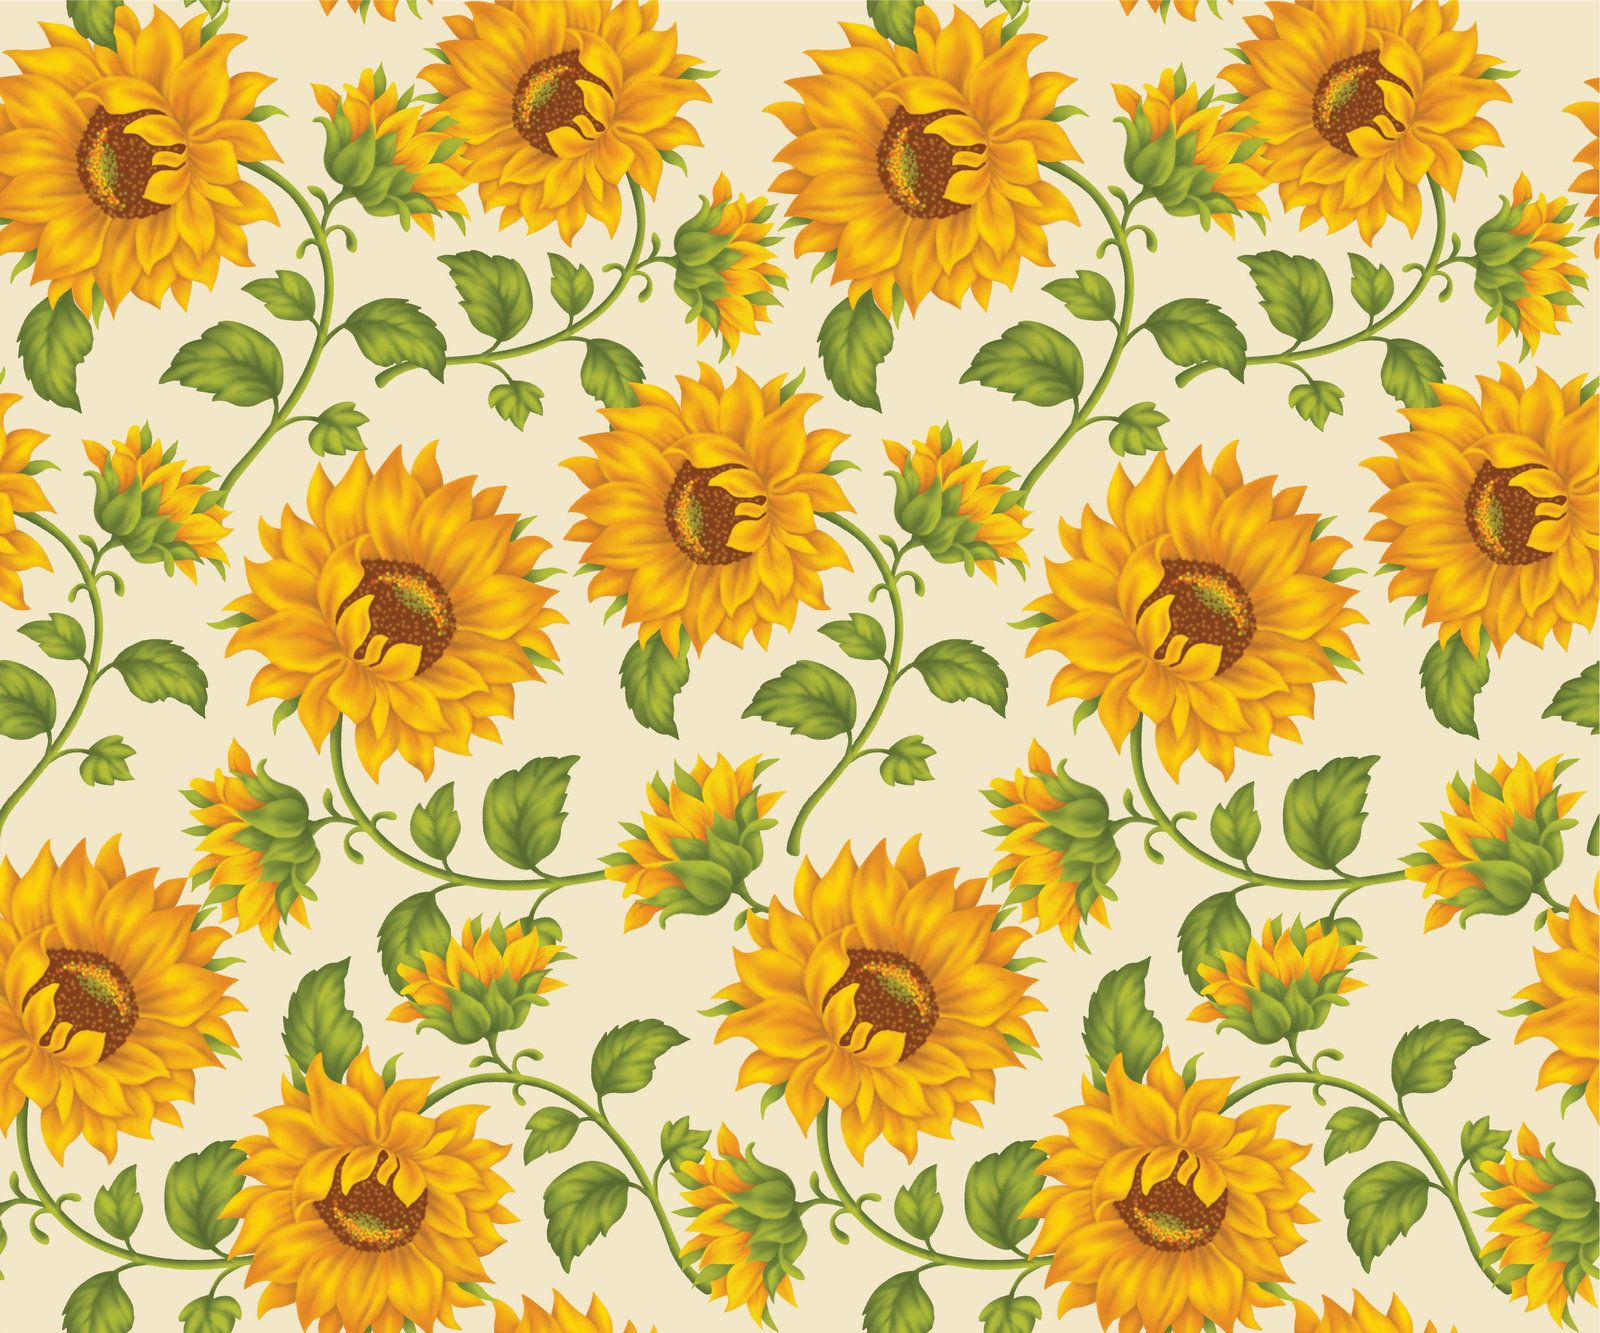 Sunflower Print In Ivory Background by DonCabanza on